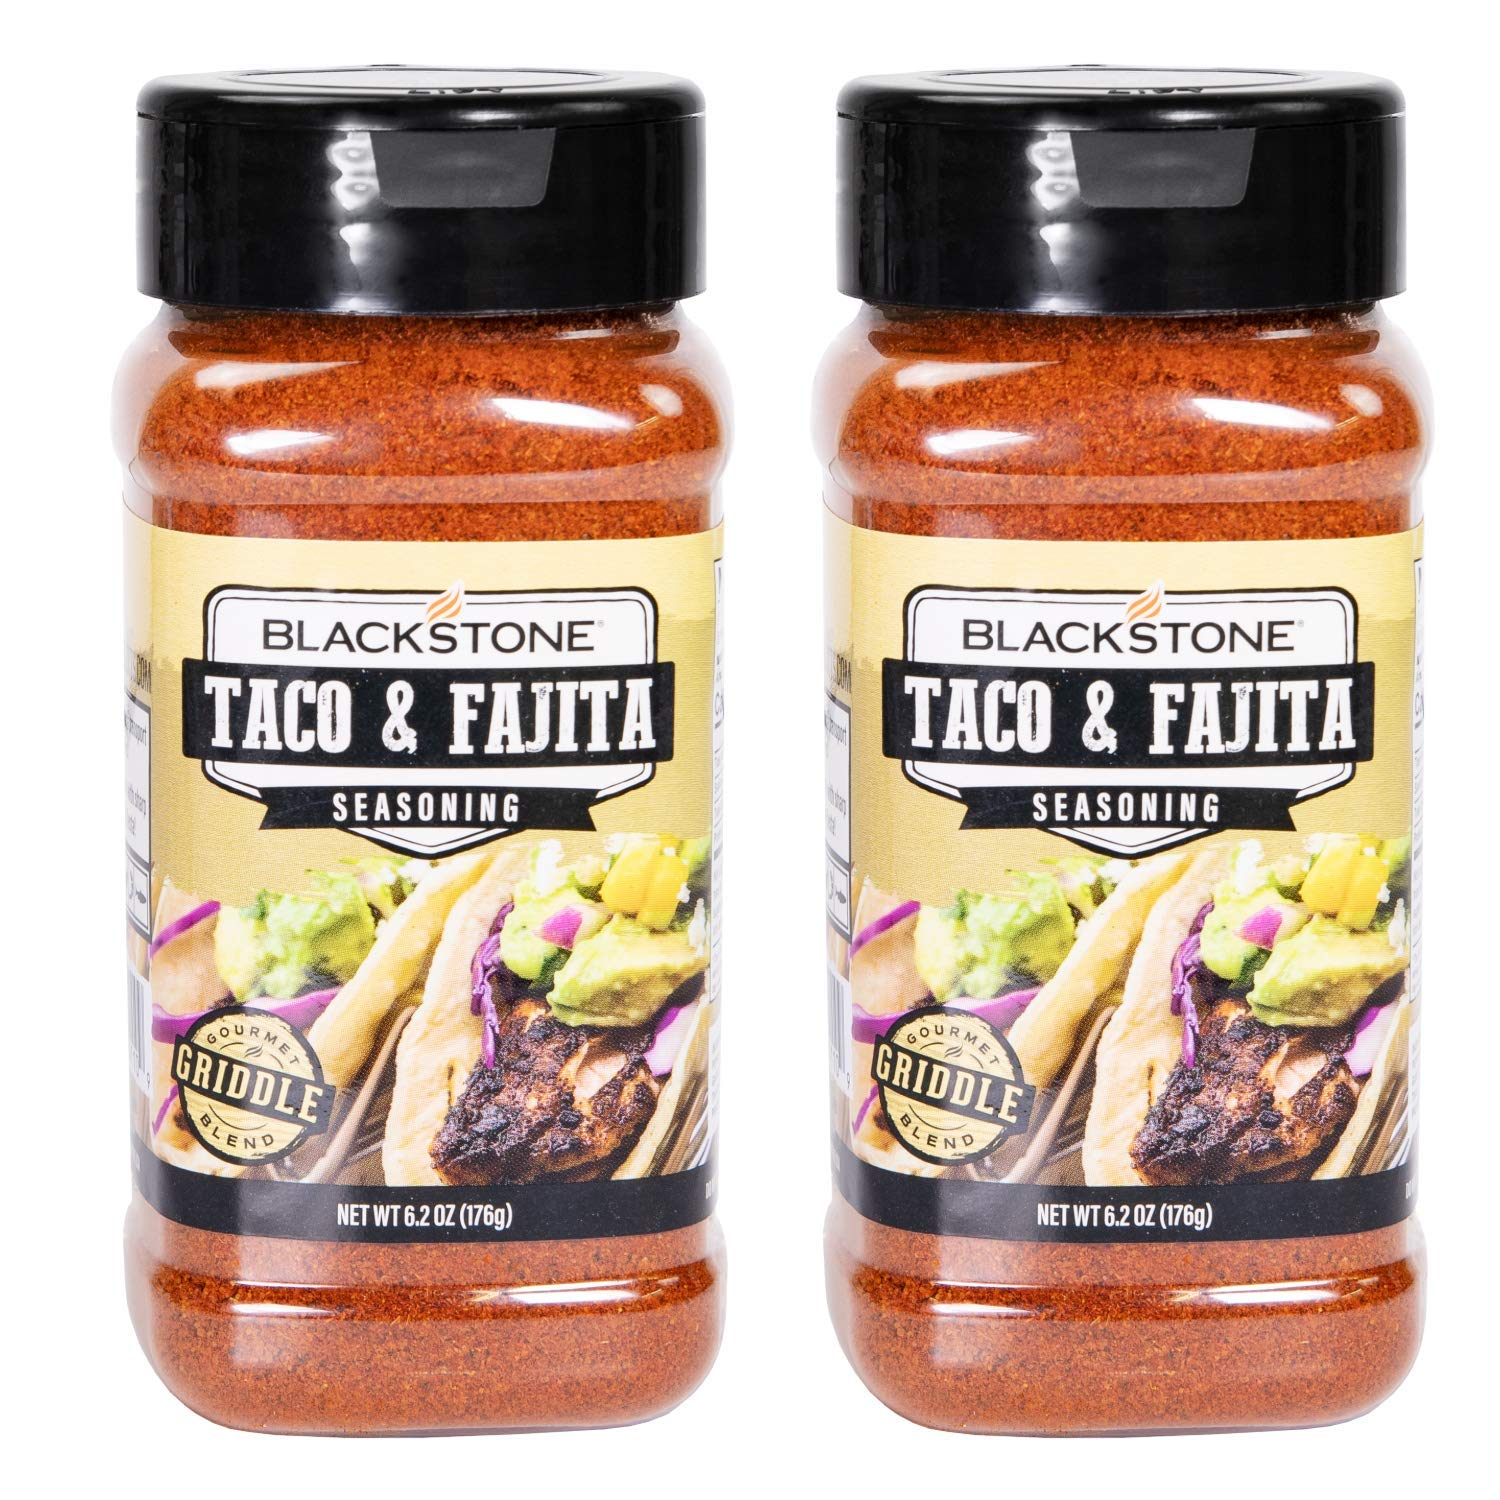 Ultimate Barbecue Spices, Gourmet Flavor Seasoning Bundle (2 Pack), Use for Grilling, Cooking, Smoking - Meat Rub, Dry Marinade, Rib Rub (Taco & Fajita, 6.2 Ounce)